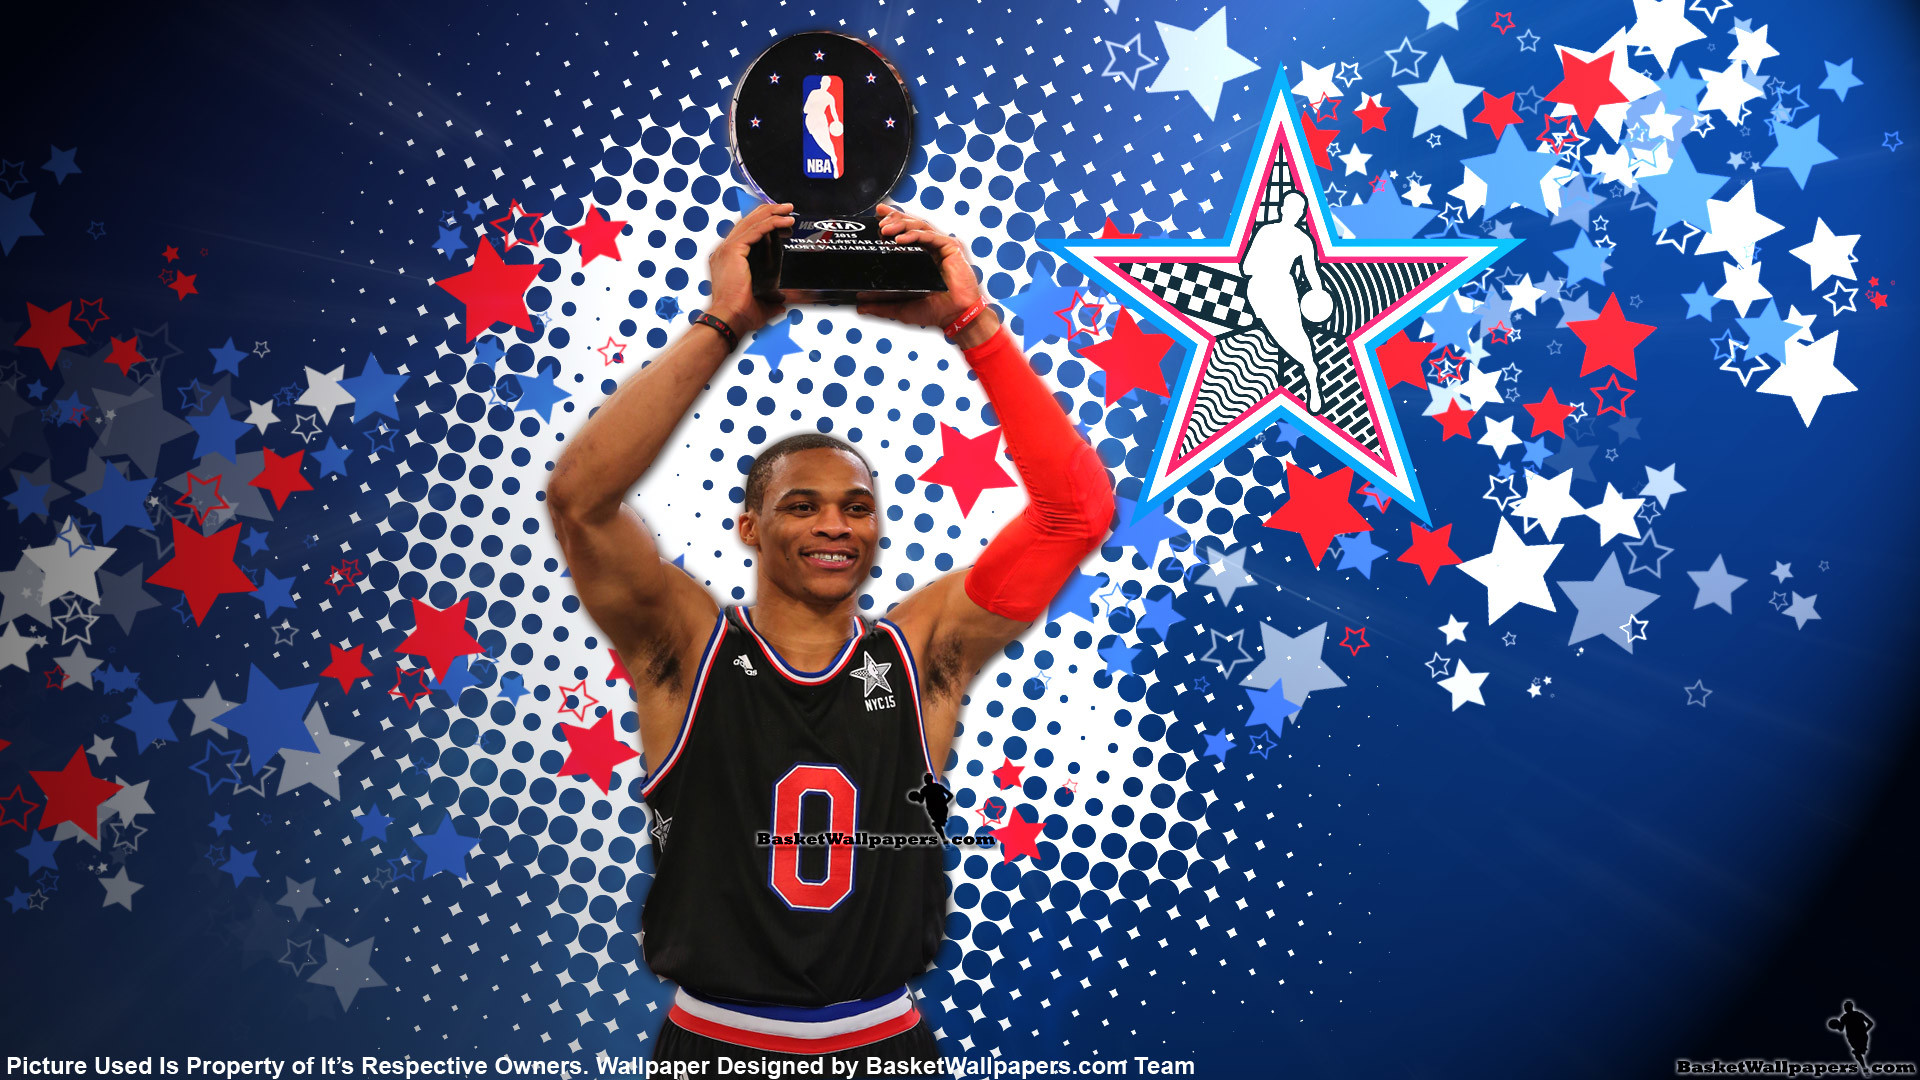 1920x1080 Russell Westbrook 2015 NBA All-Star MVP Wallpaper